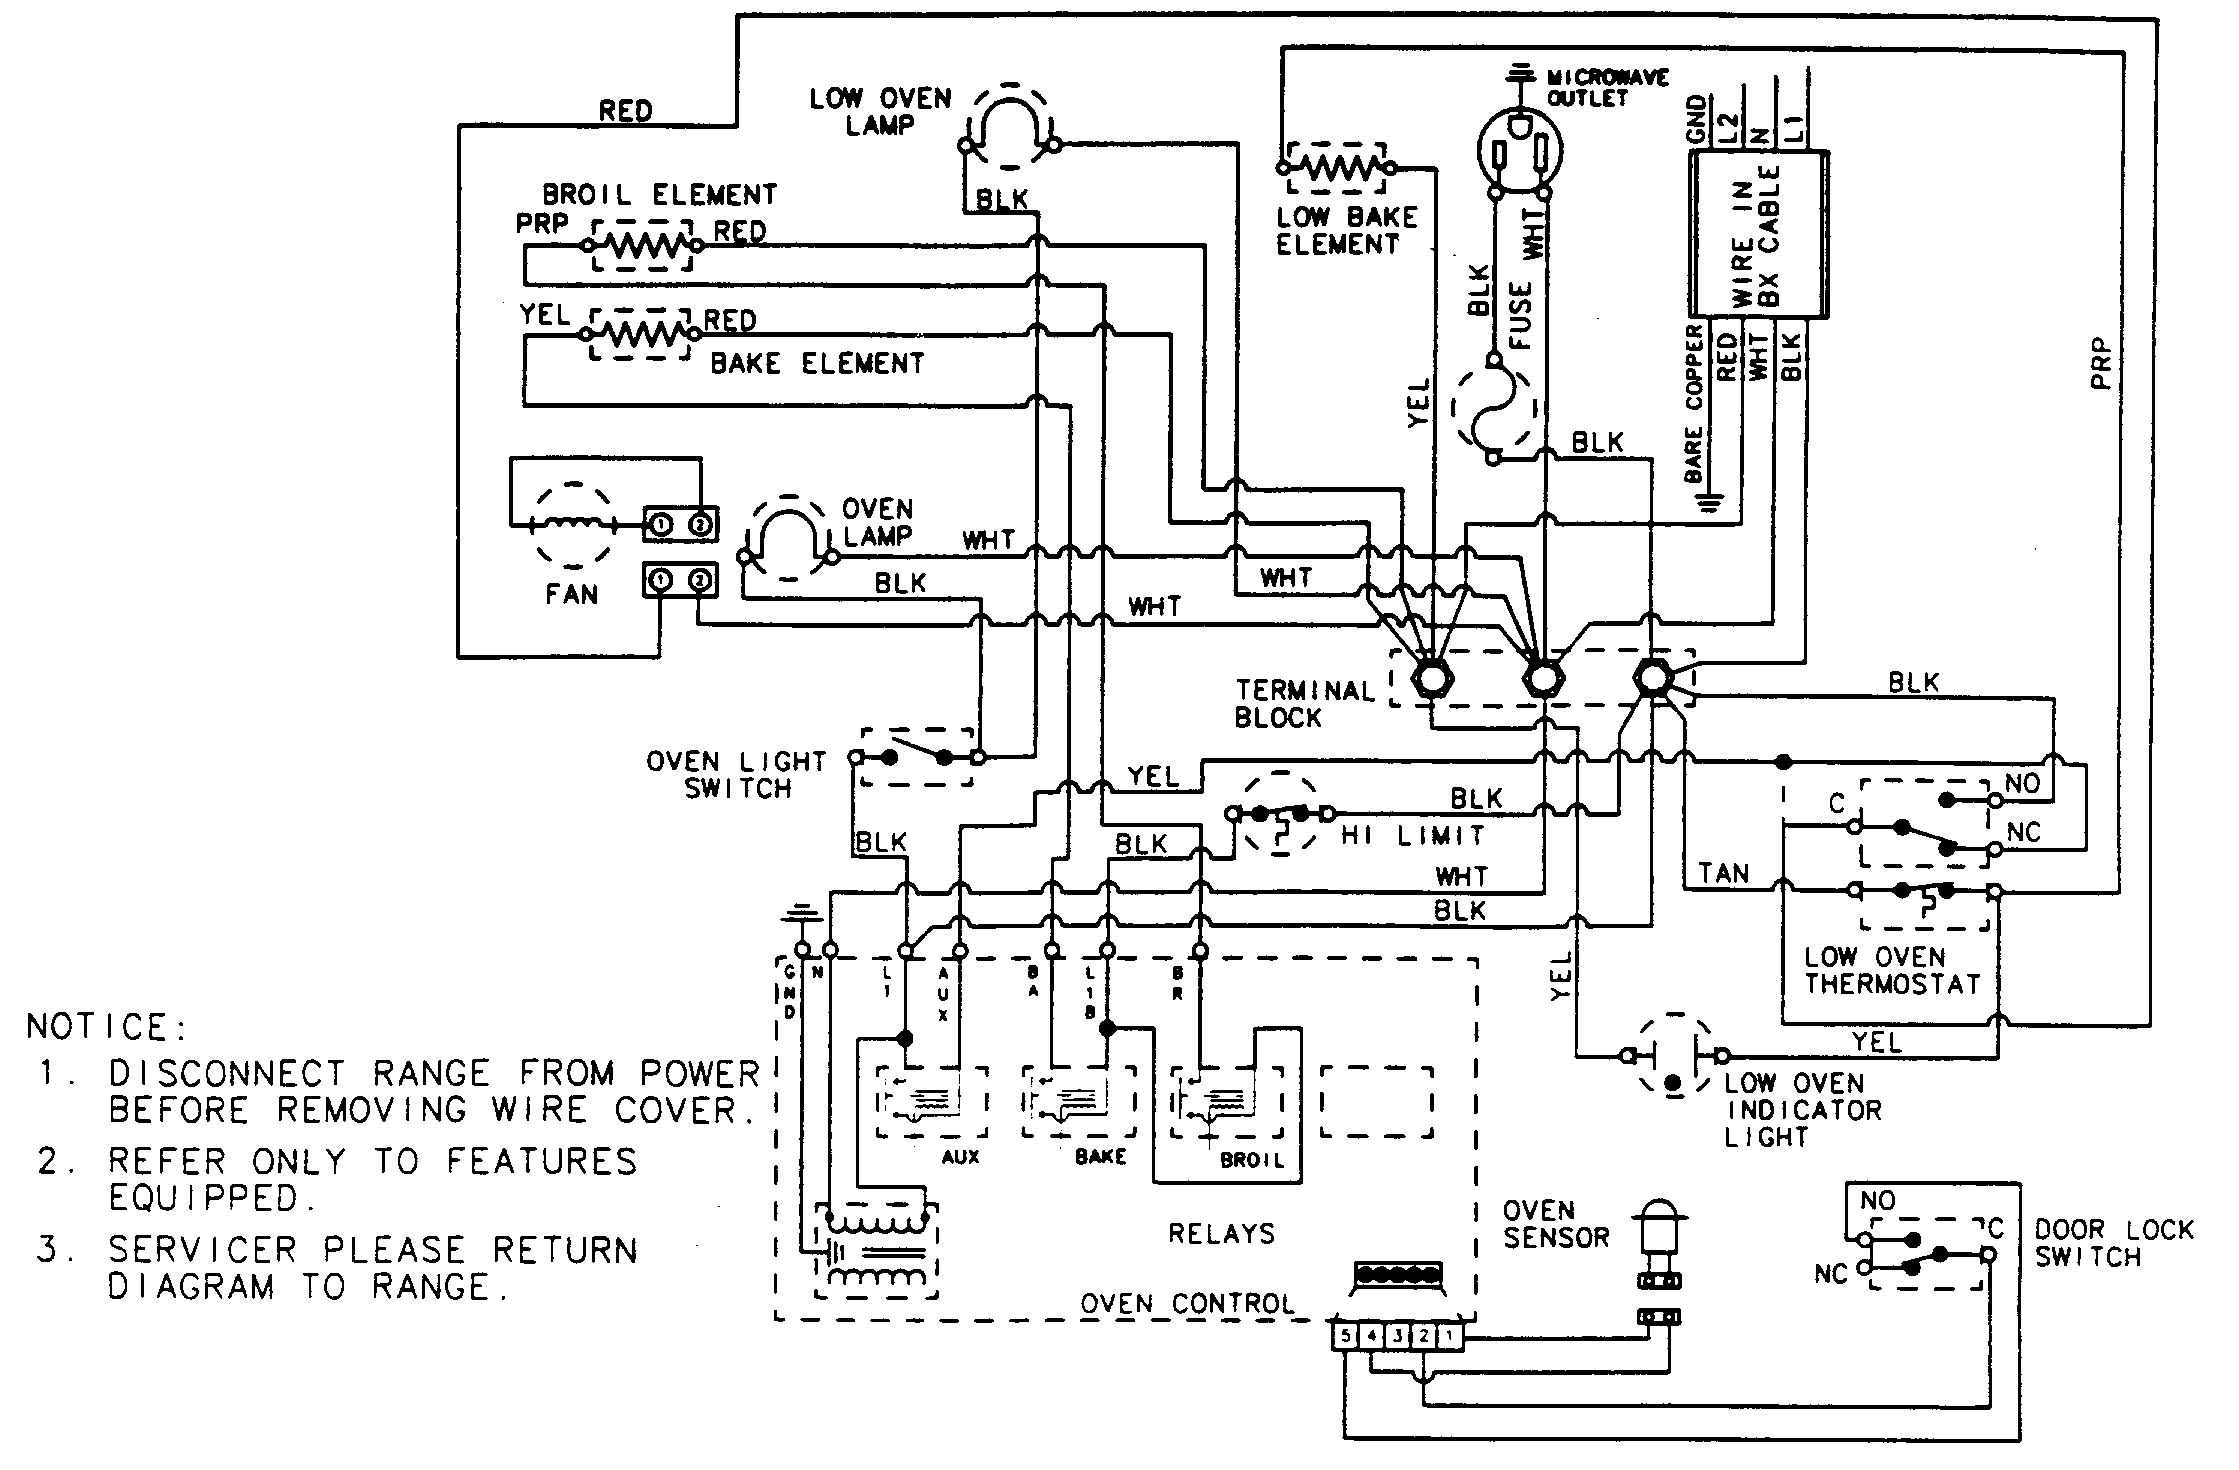 magic chef fridge wiring diagram wiring diagram for a kenmore dryer images wiring diagram also ge magic chef 9825vuv electric oven